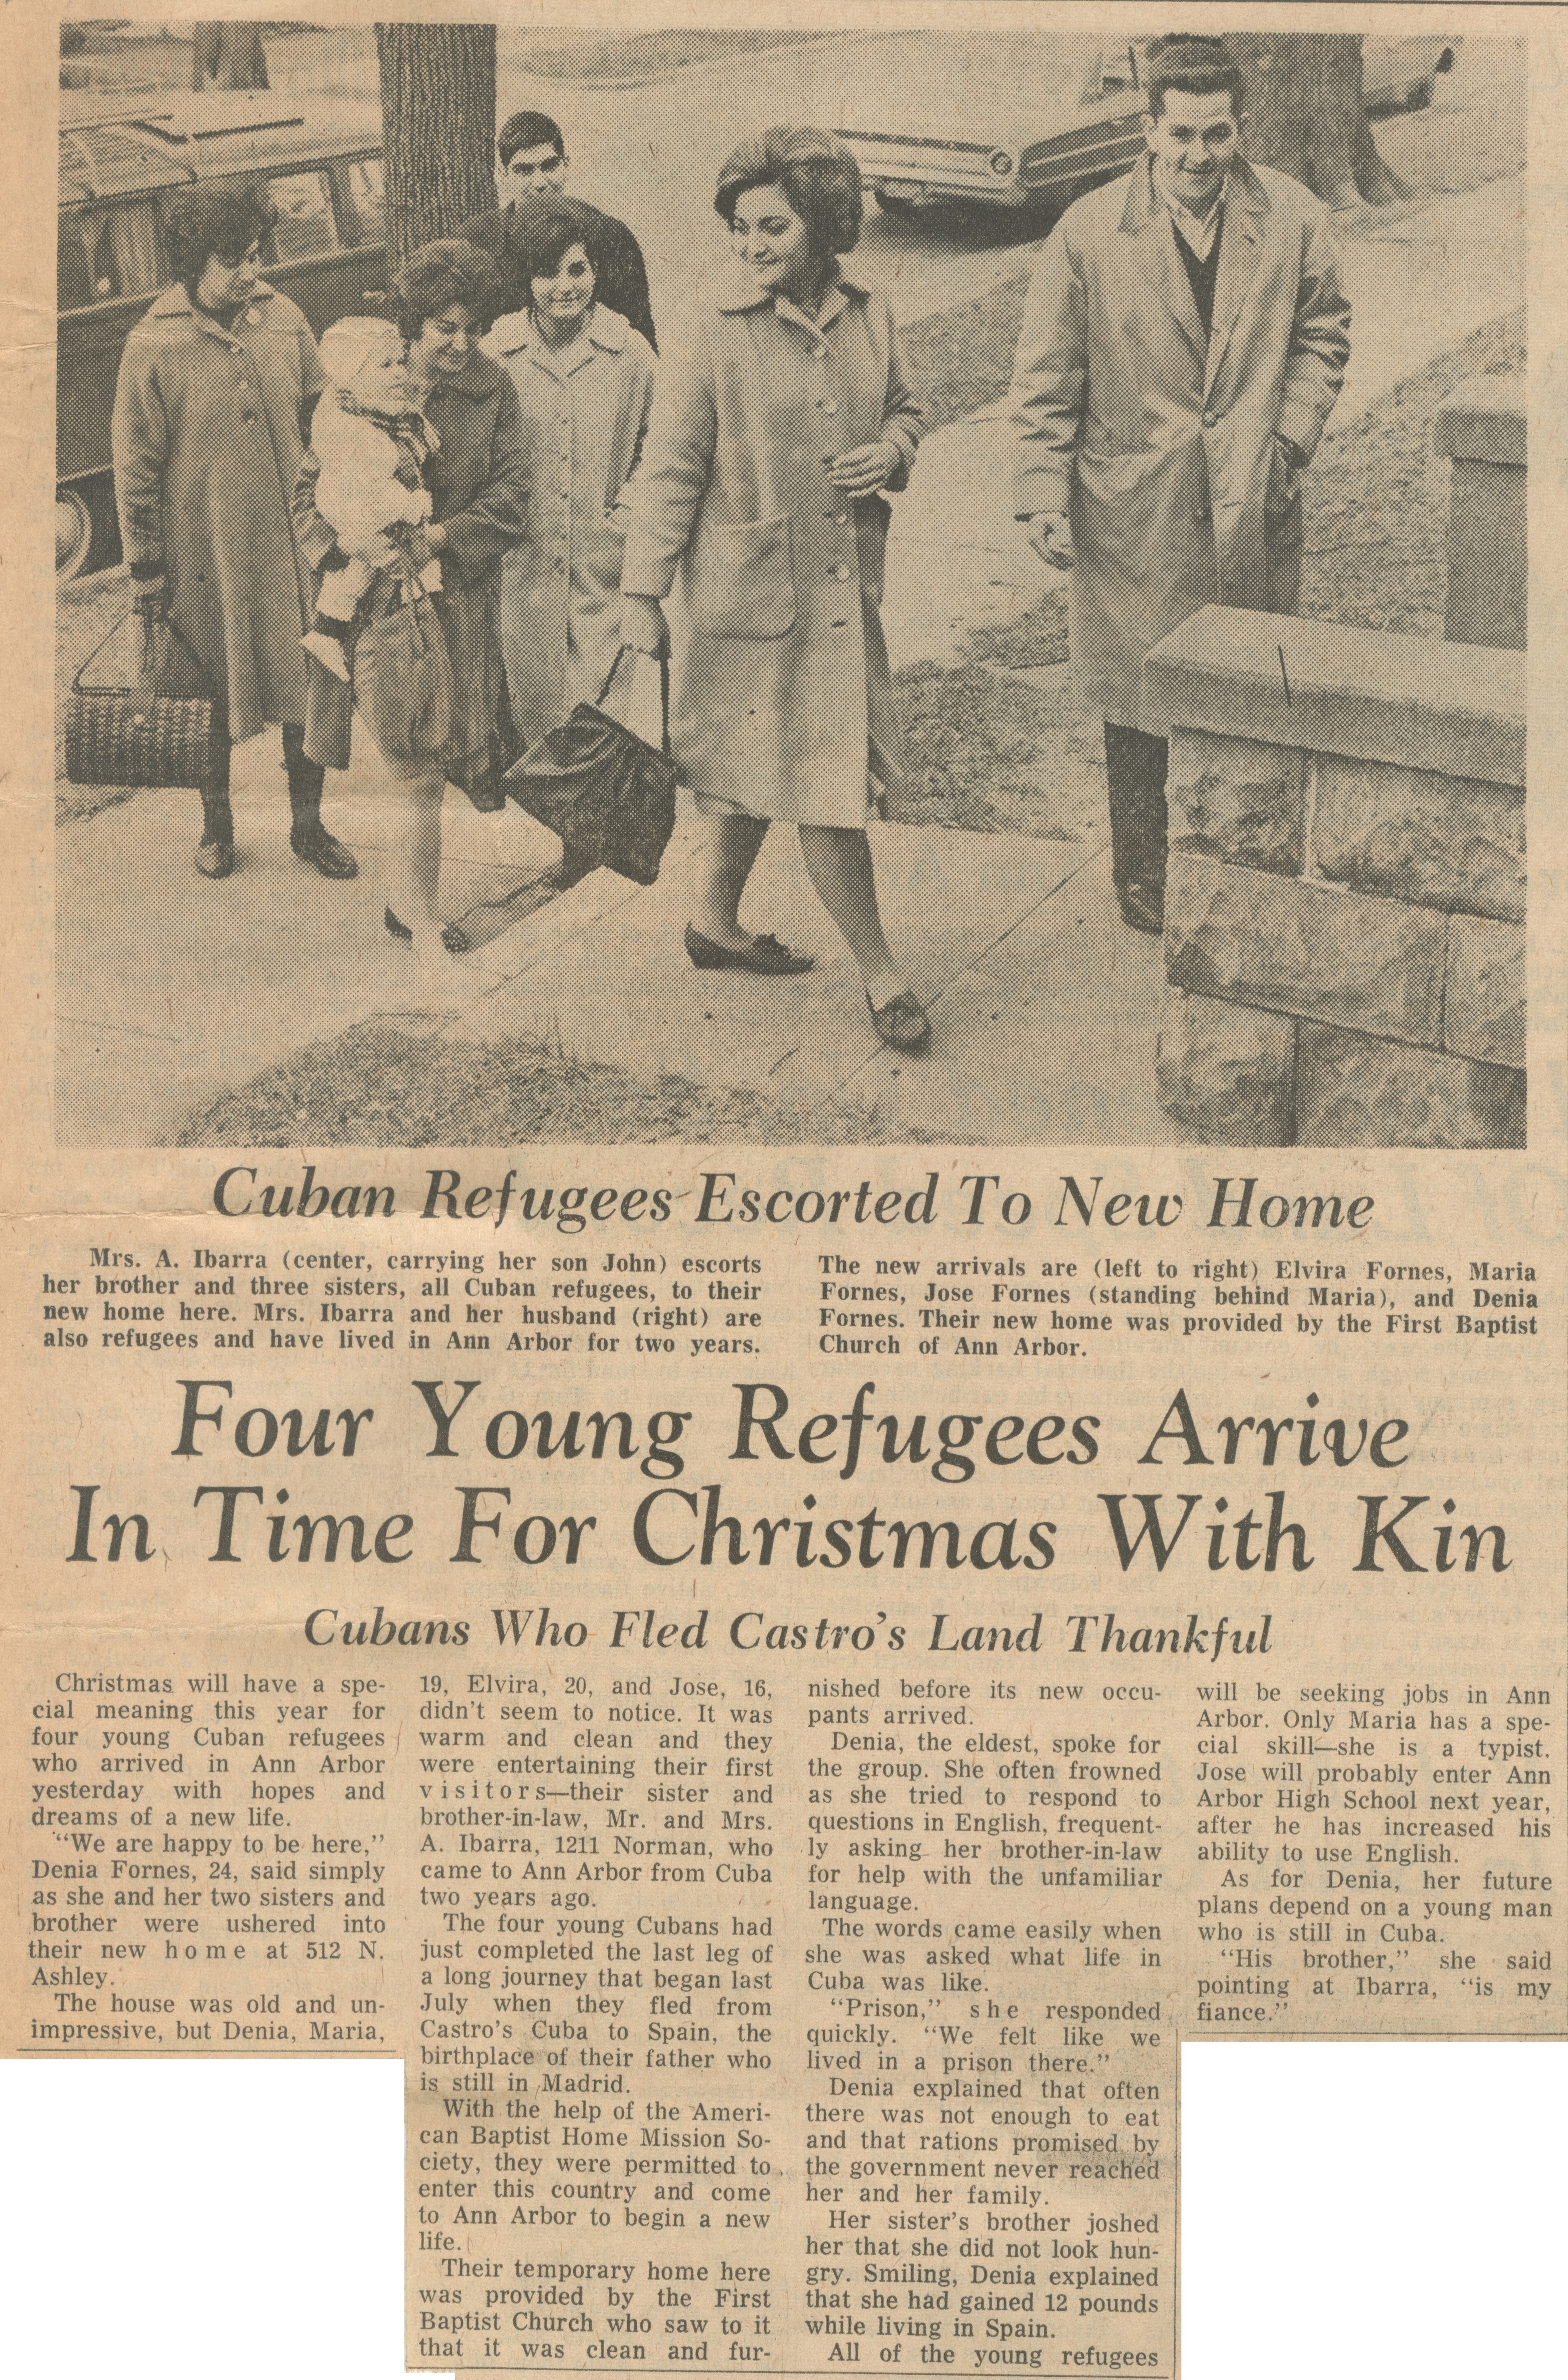 Four Young Refugees Arrive In Time For Christmas With Kin image